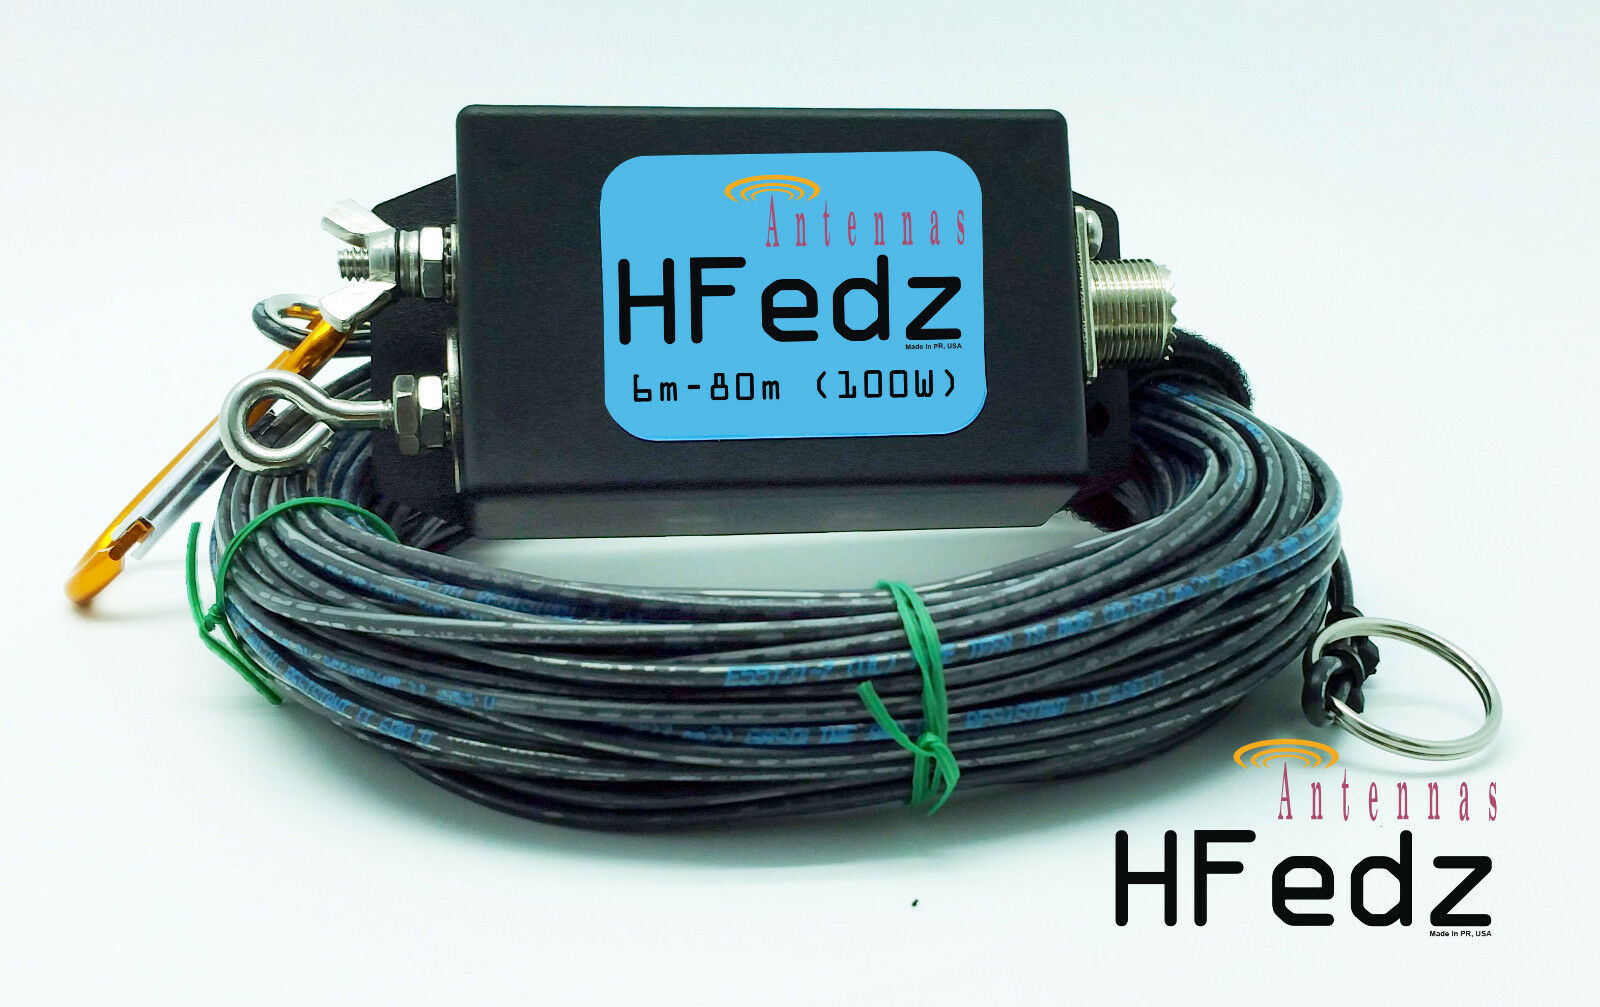 Hfedz End Fed 6m 80m Hf Antenna Ham Radio Wundr Shop Pin Hy Gain Rotor Rotator Control Unit For The Cd 45ii Iv